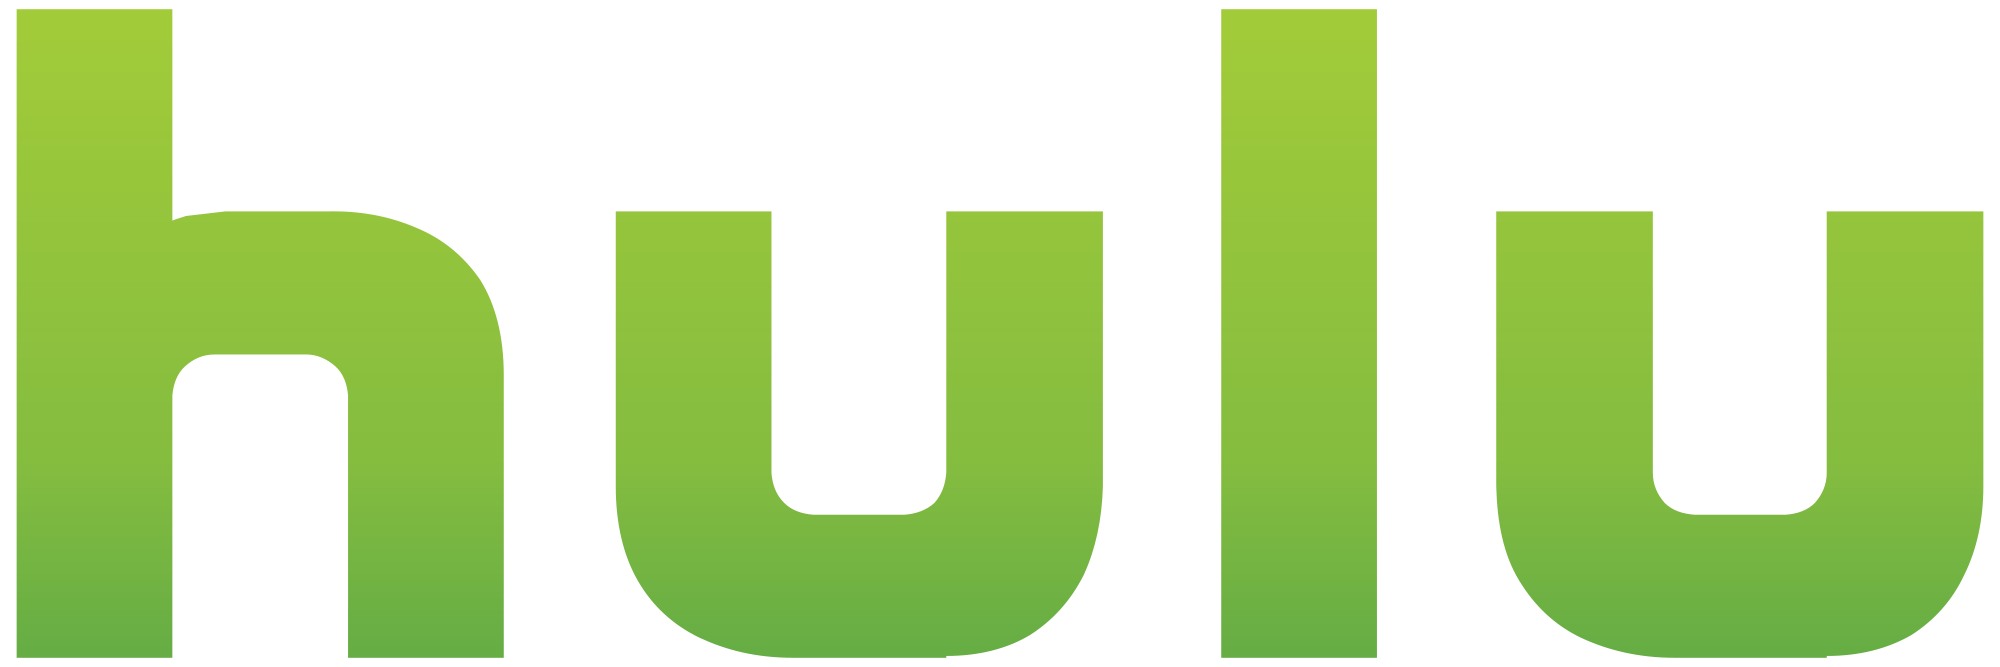 Hulu To Add Cable Channels To Streaming Service